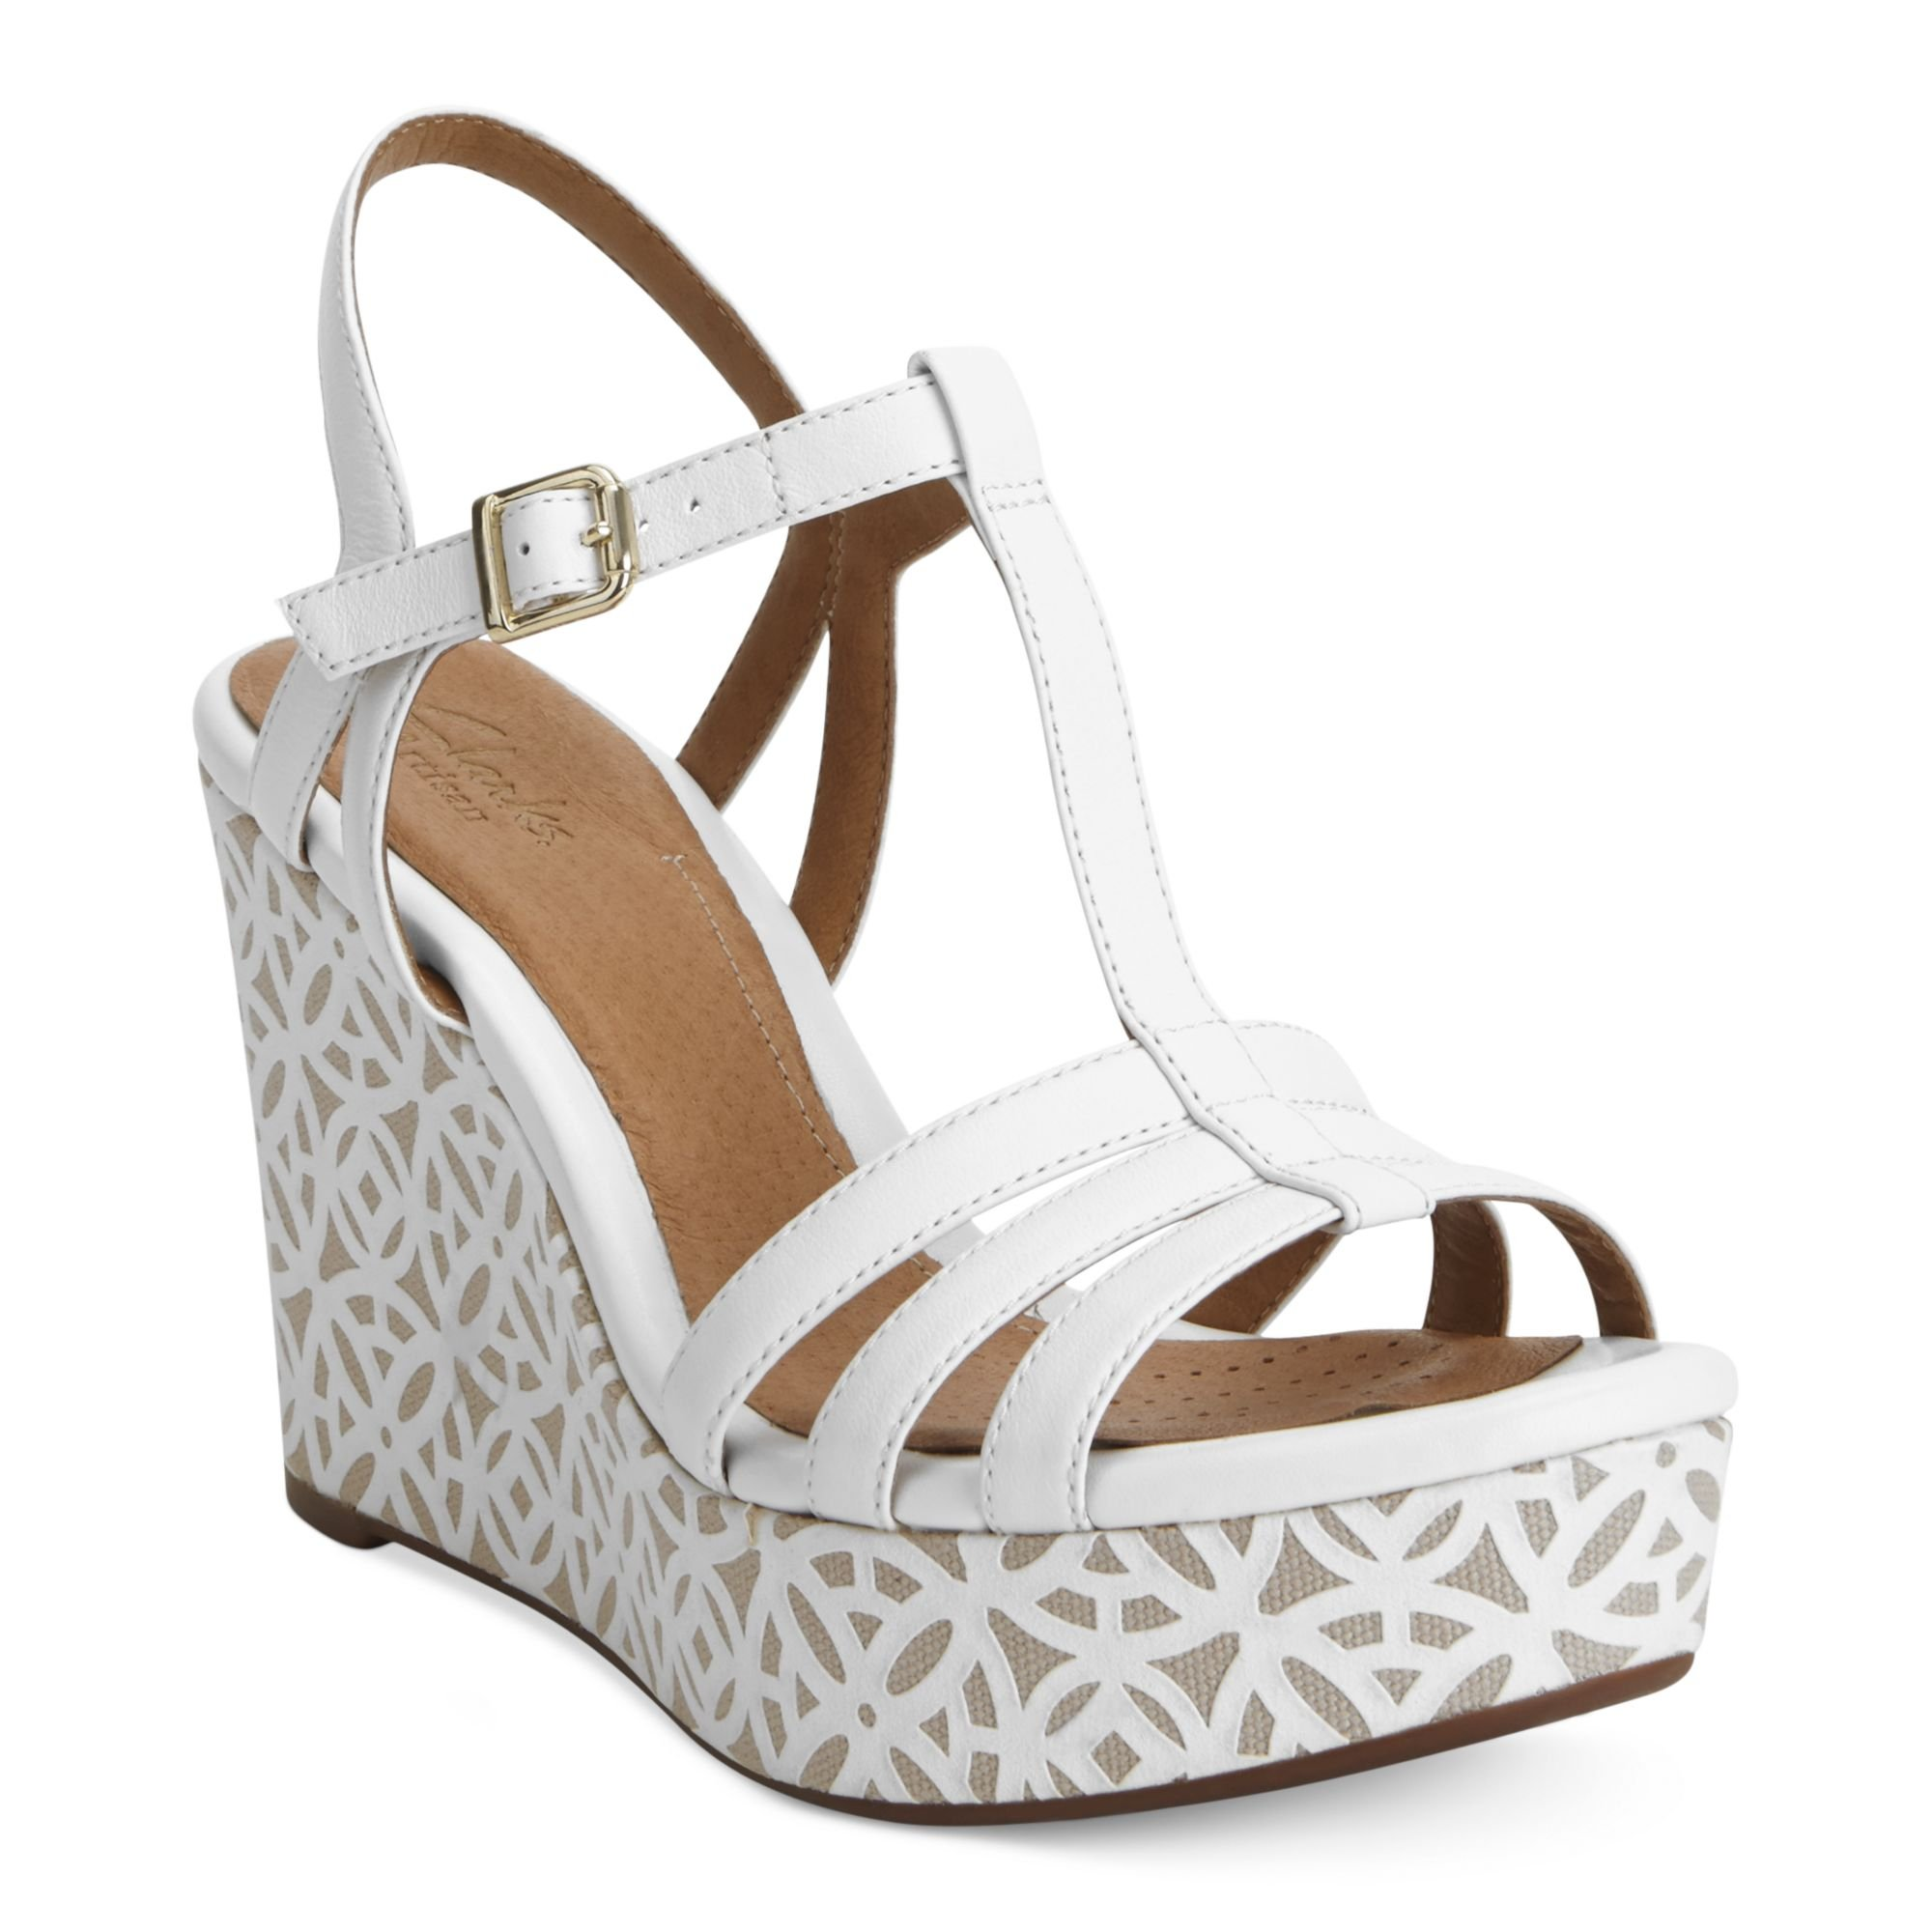 206e820006ba Lyst - Clarks Artisan By Amelia Avery Platform Wedge Sandals in White